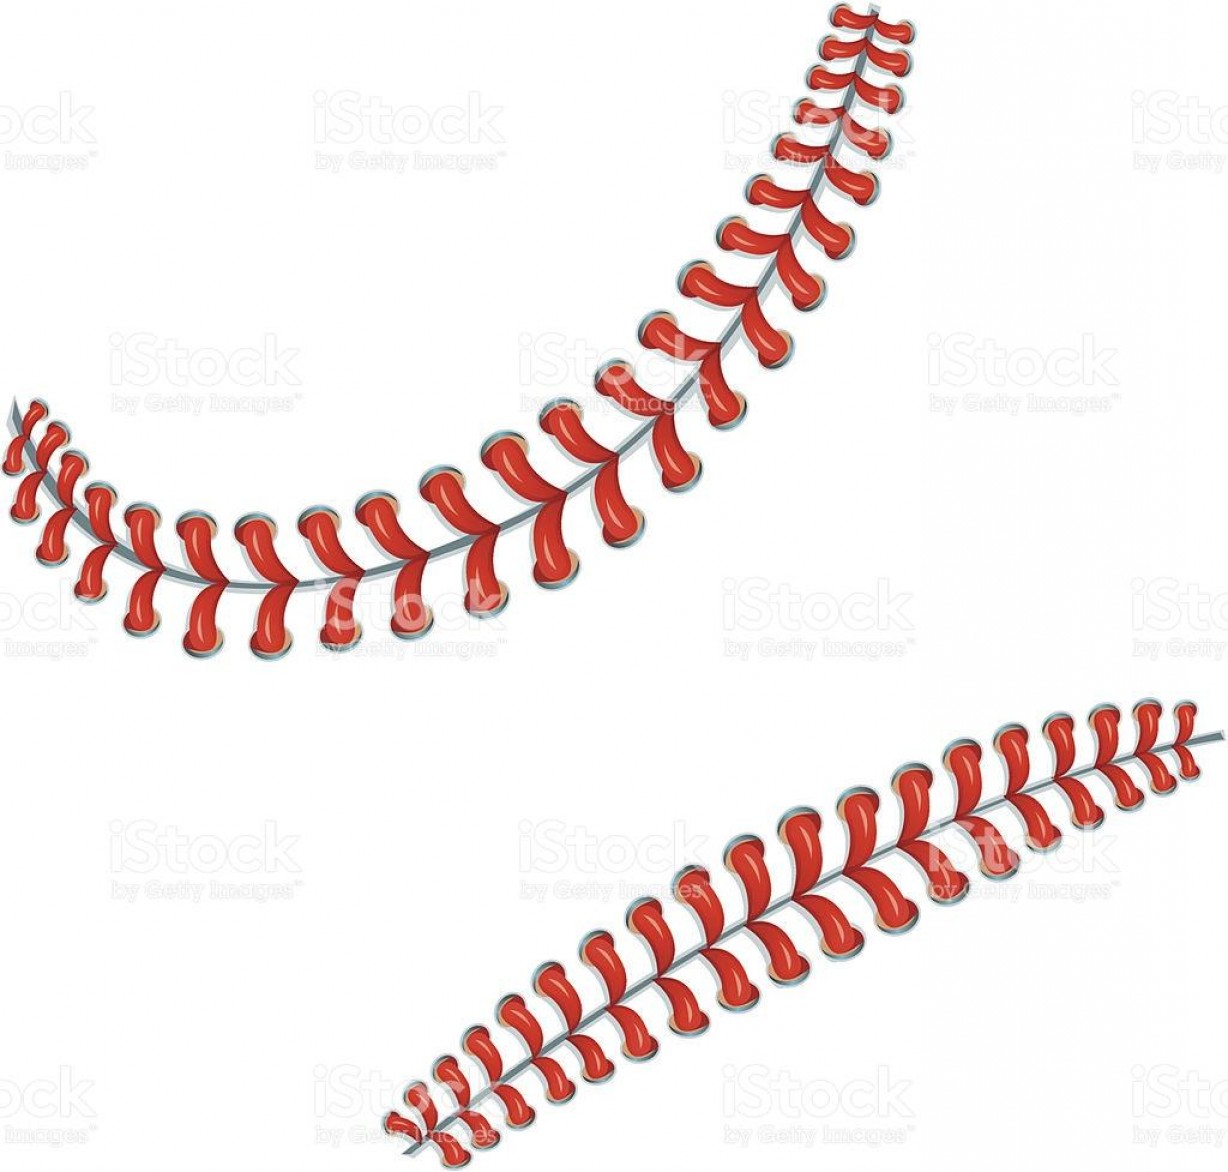 Laces Basball Vector: Best Baseball Stitches Or Laces Background Vector File Free